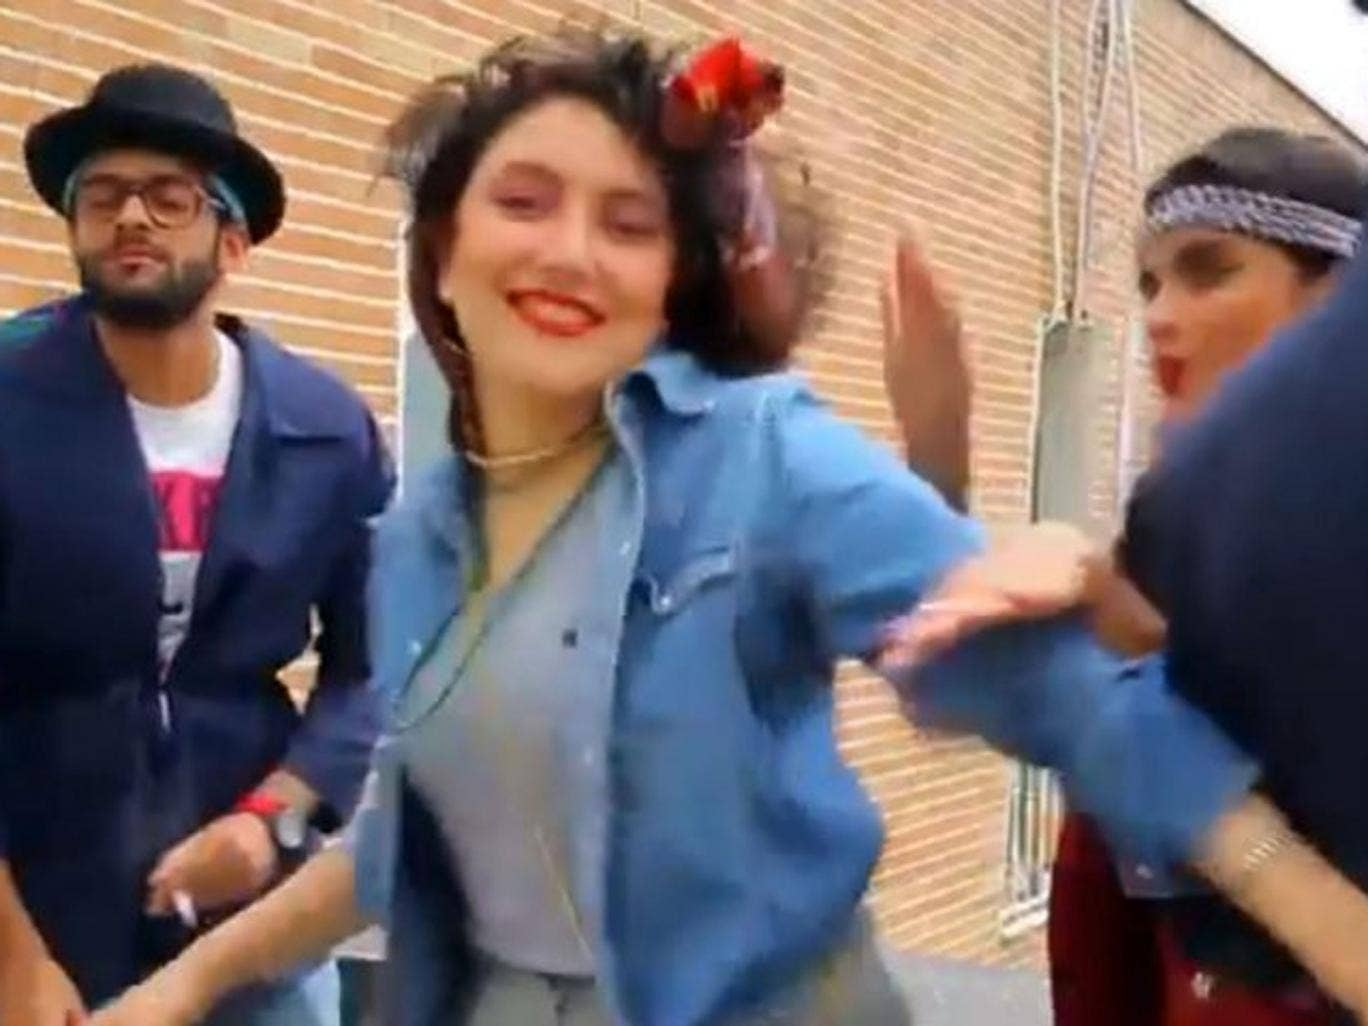 """In this frame grab taken from video posted to YouTube, people dance to Pharrell Williams' hit song """"Happy"""" on a rooftop in Tehran, Iran. Police in Iran have arrested six young people and shown them on state television for posting the video. While the song"""